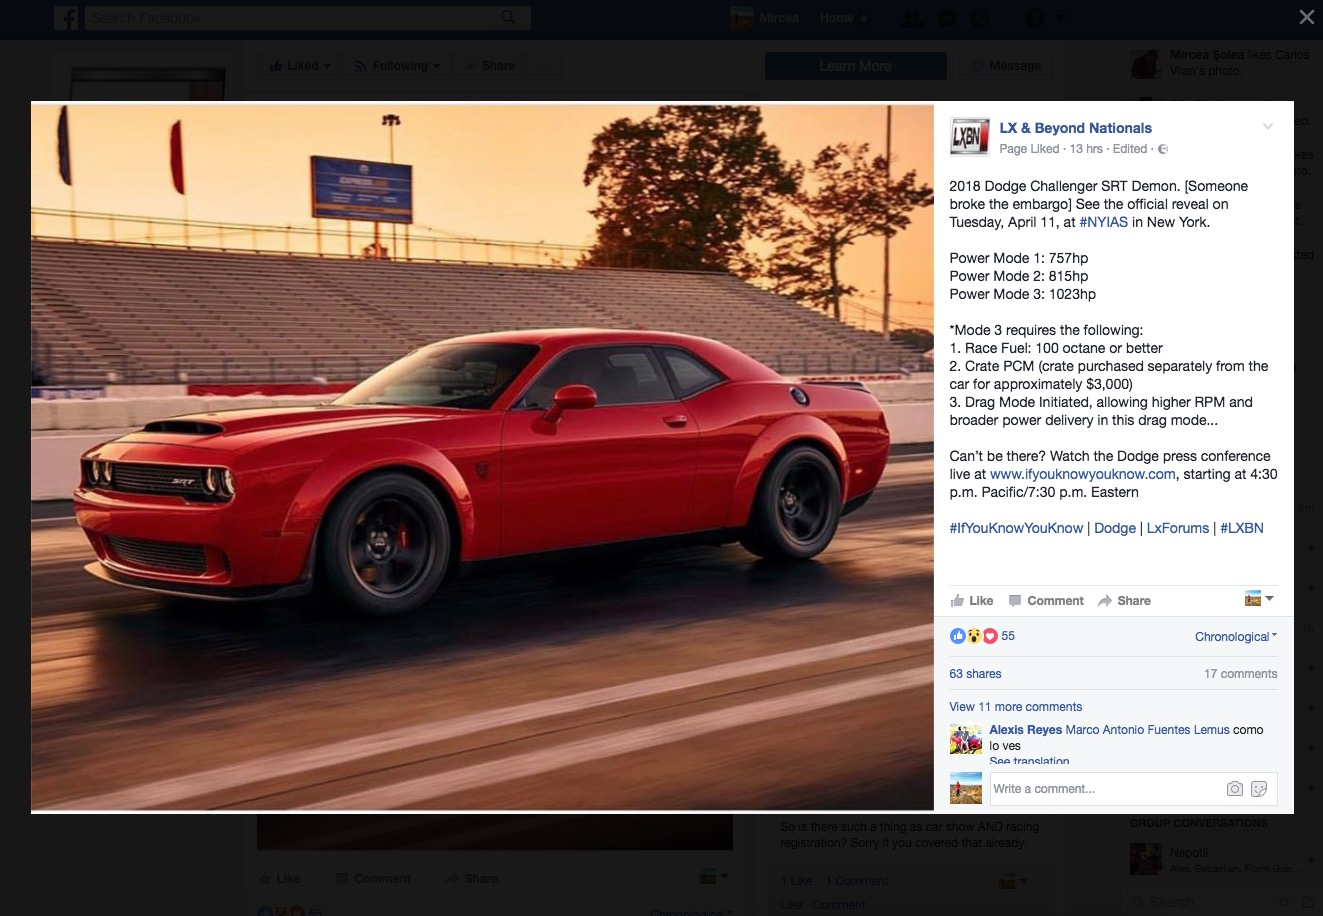 2018 Dodge Challenger Srt Demon Reportedly Offers 1 023 Hp In Power